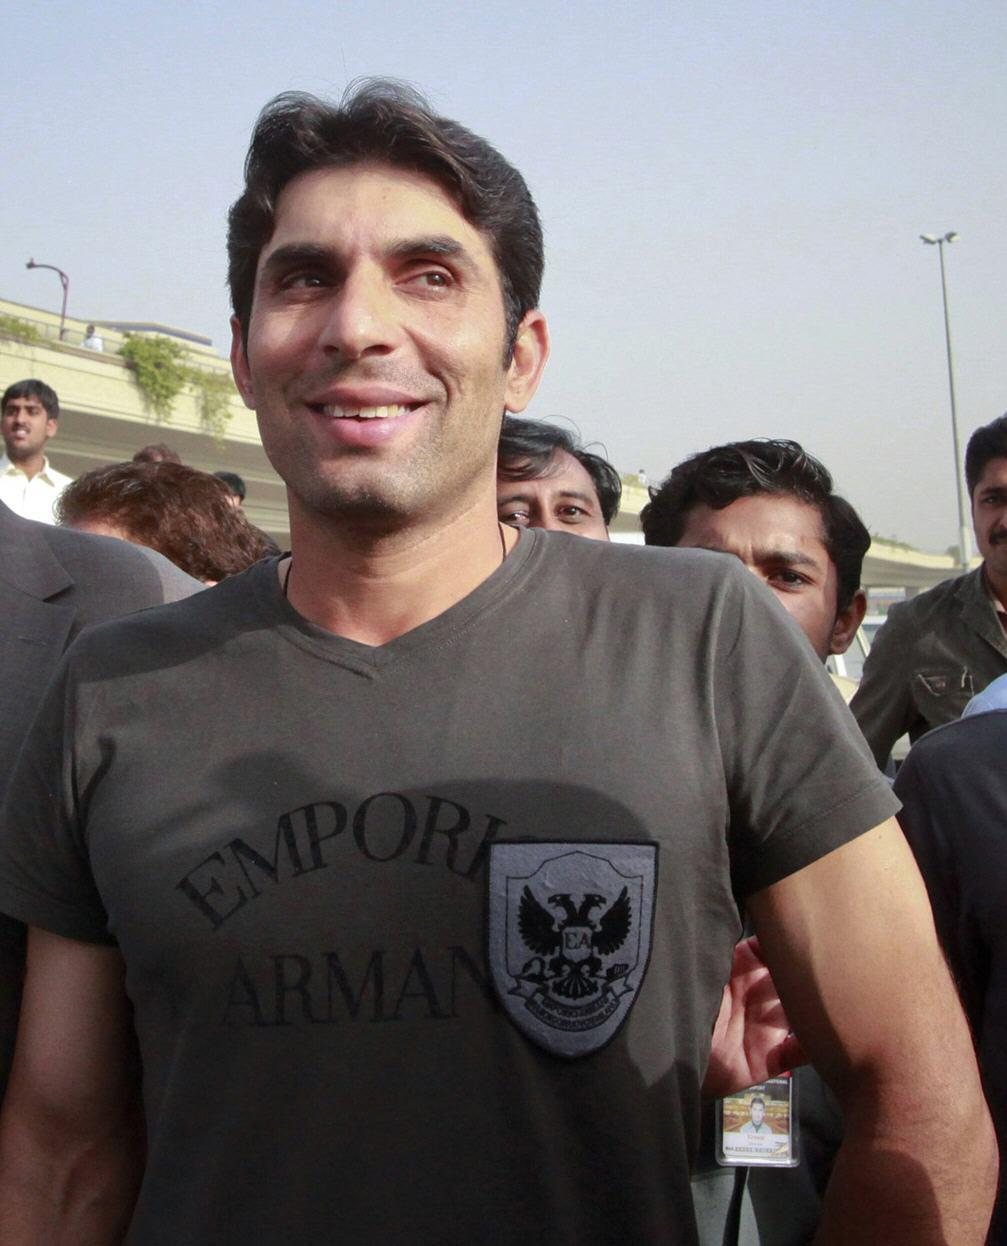 Misbah Ul Haq Picture After Wining Asia Cup 2012 Misbah Ul Haq Picture After Asia Cup 2012 Success